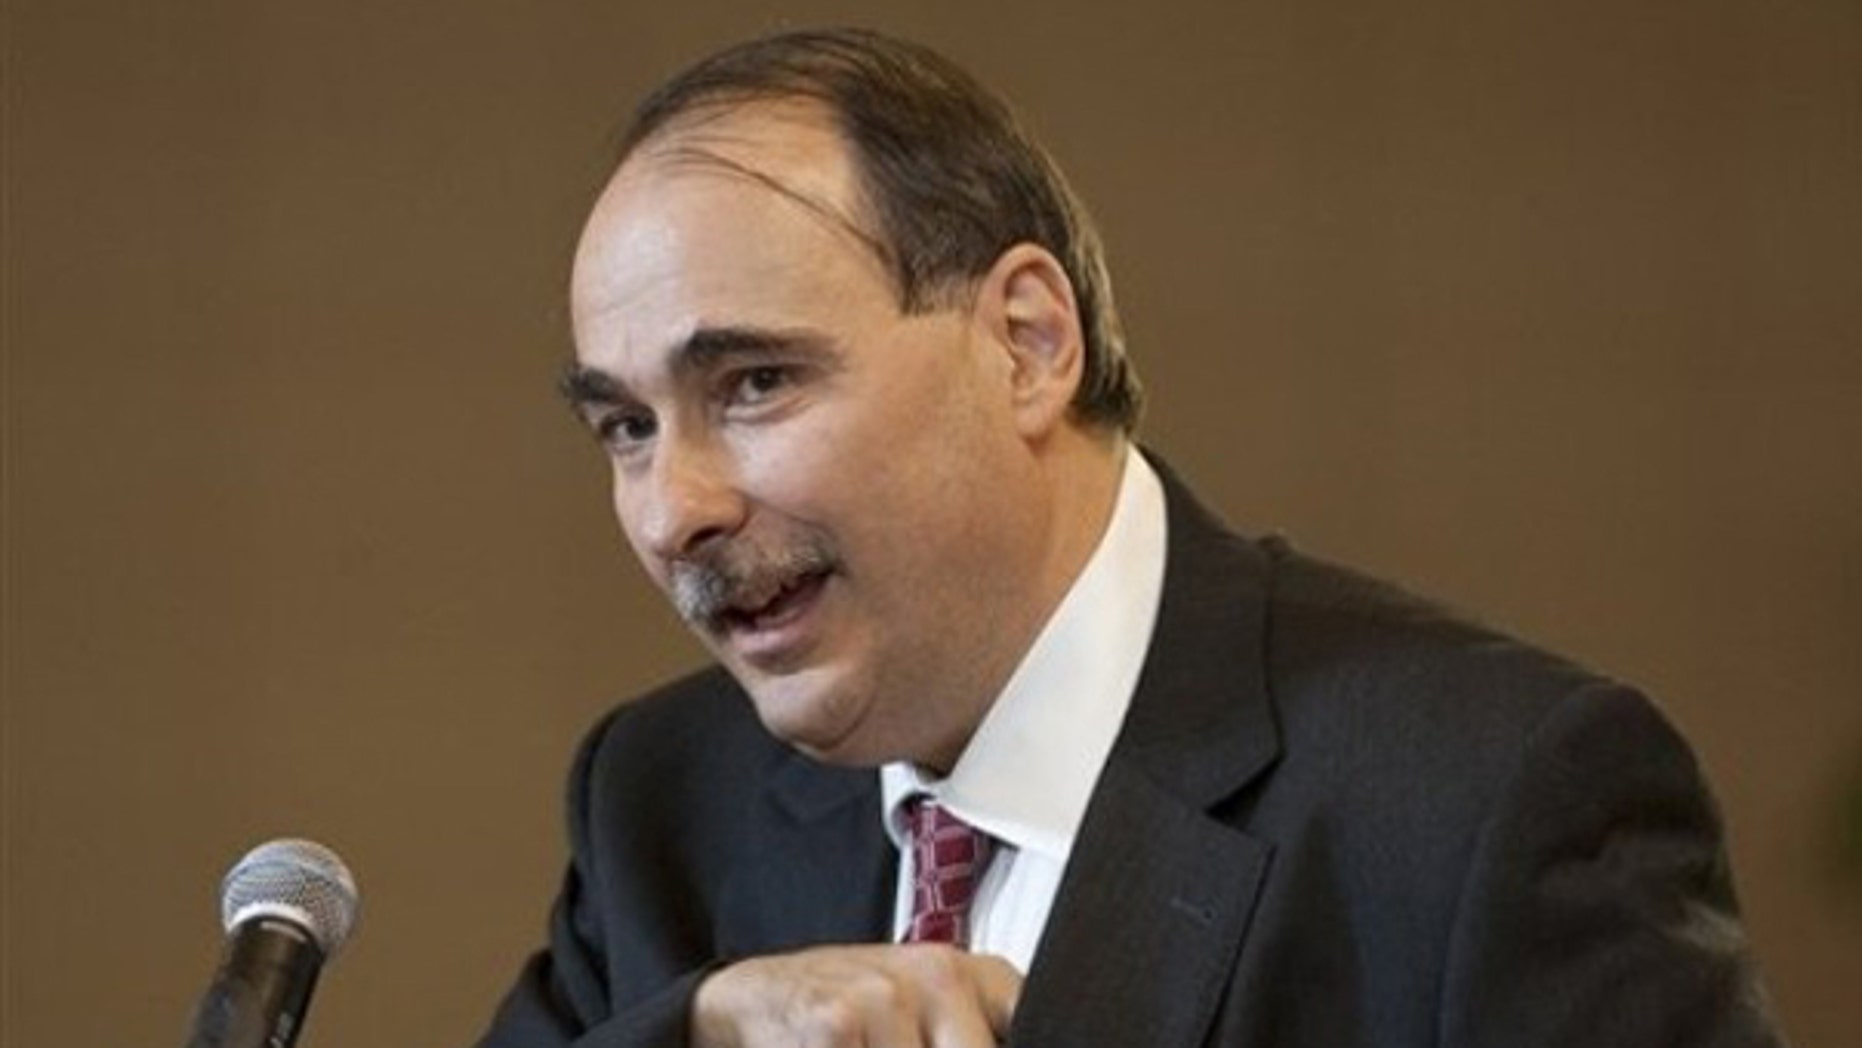 David Axelrod reaches for his glasses as he speaks at the University of Nebraska-Lincoln, in Omaha, Neb., Oct. 9. (AP Photo)